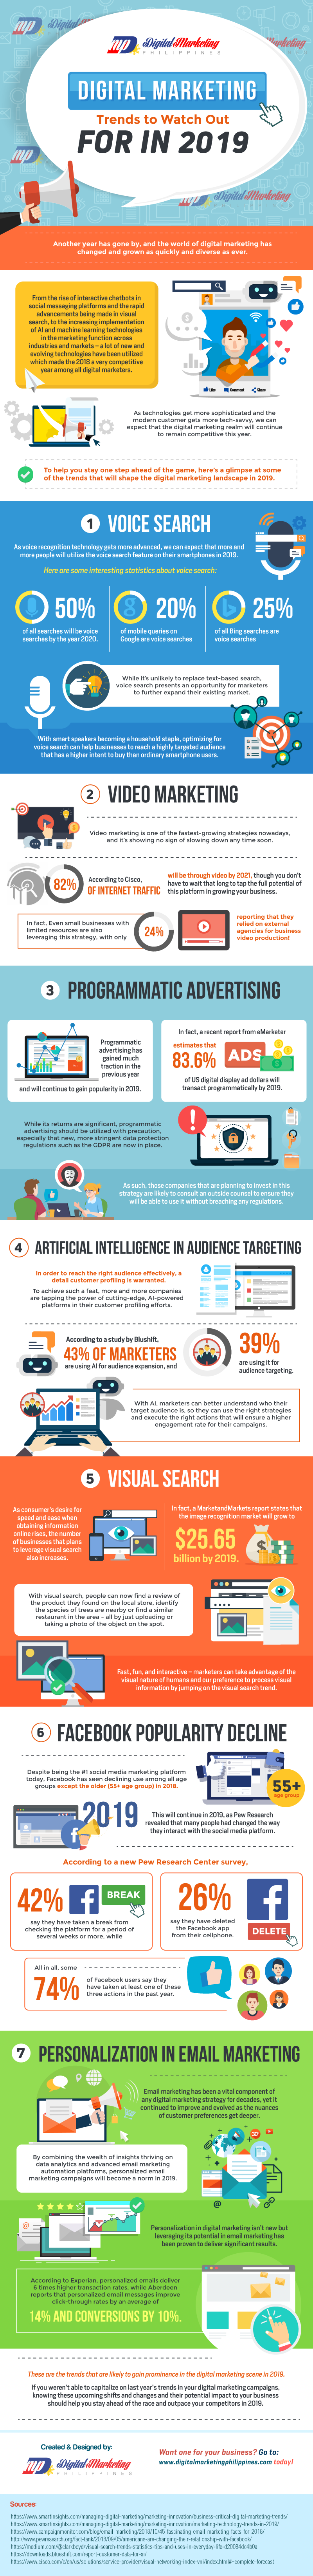 Digital Marketing Trends to Watch Out For in 2019 (Infographic) - An Infographic from Digital Marketing Philippines